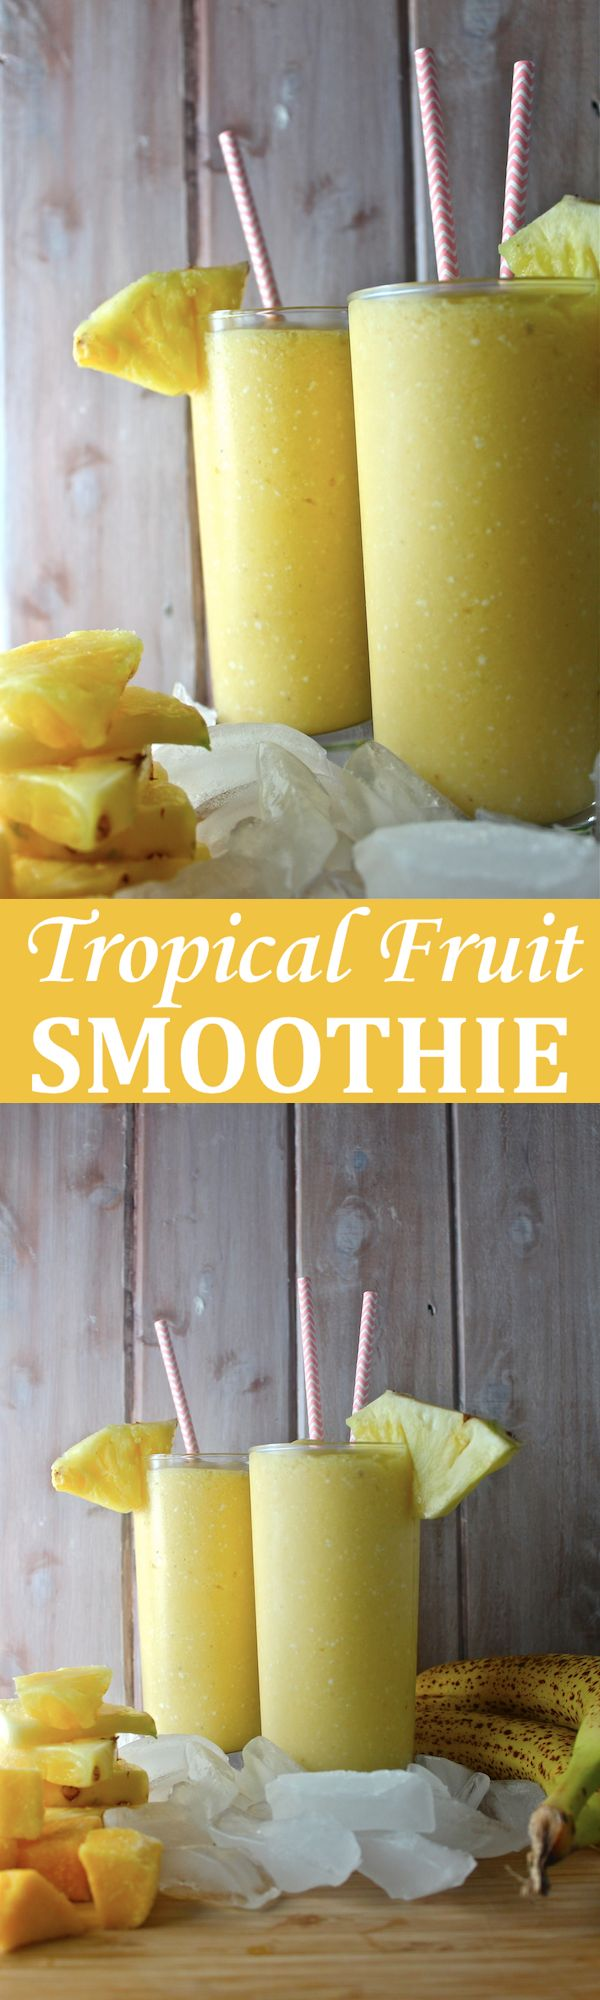 This Tropical Fruit Smoothie - with lots of pineapple, mango, and rich coconut milk - is fruity, frosty, tart, and creamy! | The Millennial Cook #winterrecipe #smoothie #orange #banana #mango #pineapple #coconut